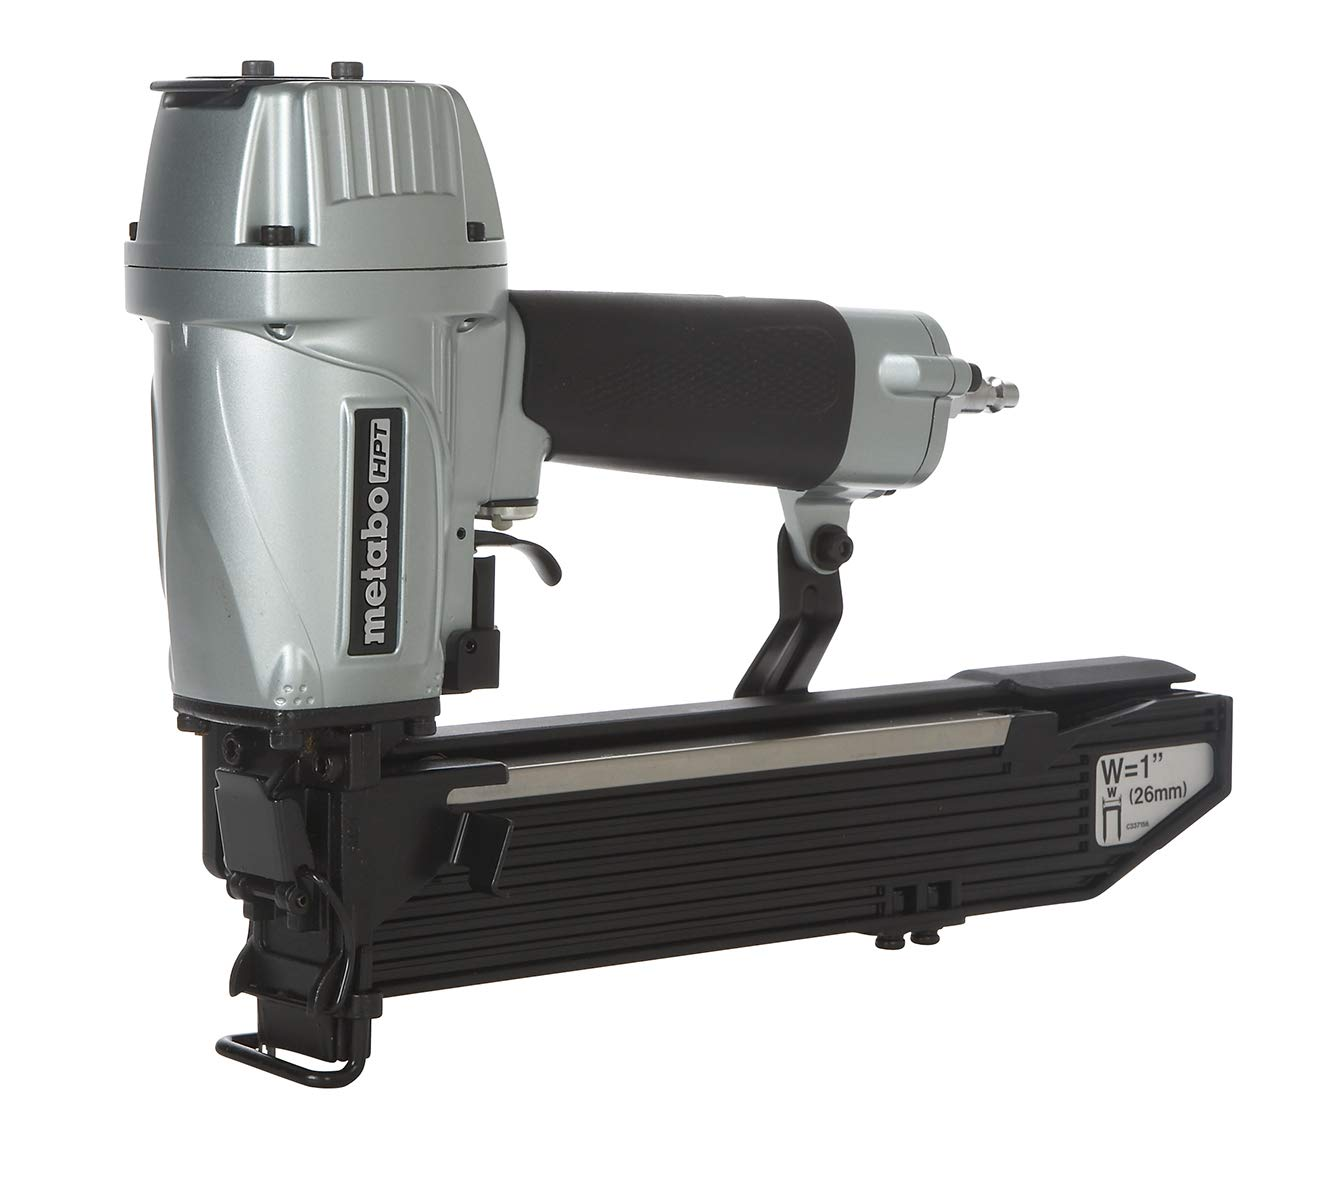 Metabo HPT N5024A2 Pneumatic 1'' Wide Crown Stapler, 16 Gauge, 1''Up To 2'' Staples, High Capacity Magazine, Tool-LESS Depth Adjustment, Quick-Clear Nose, 5-Year Warranty